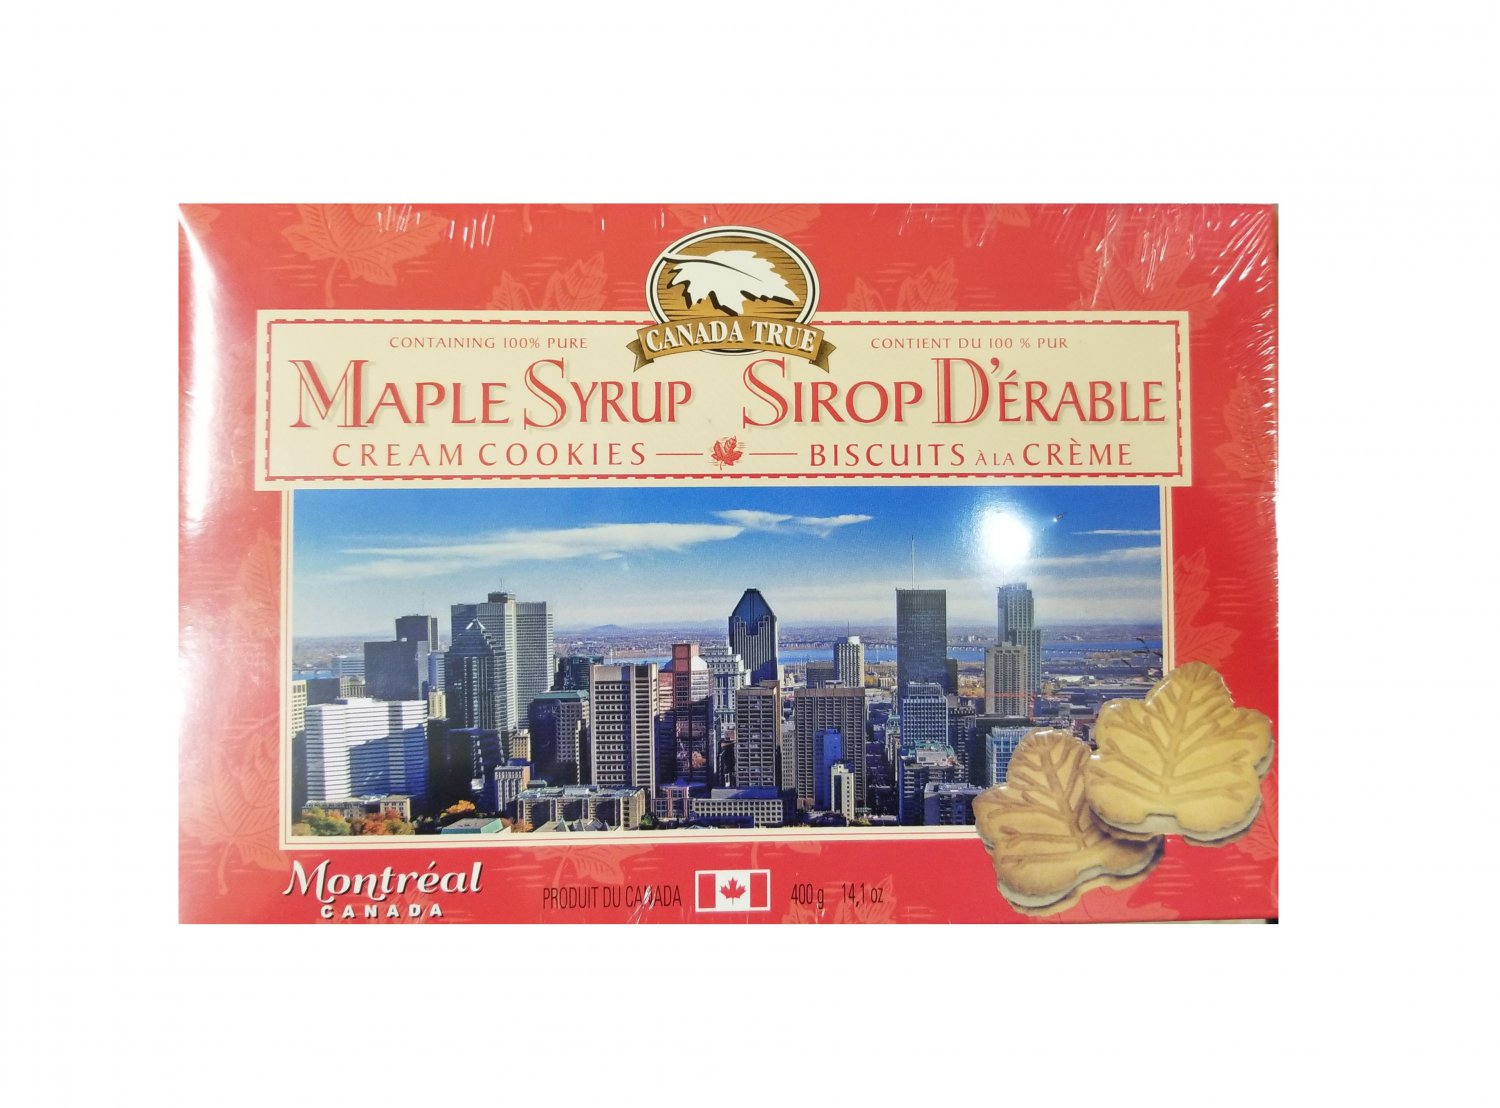 Canada True Premium Maple Cream Cookie with 100% Pure Maple Syrup + Limited stock